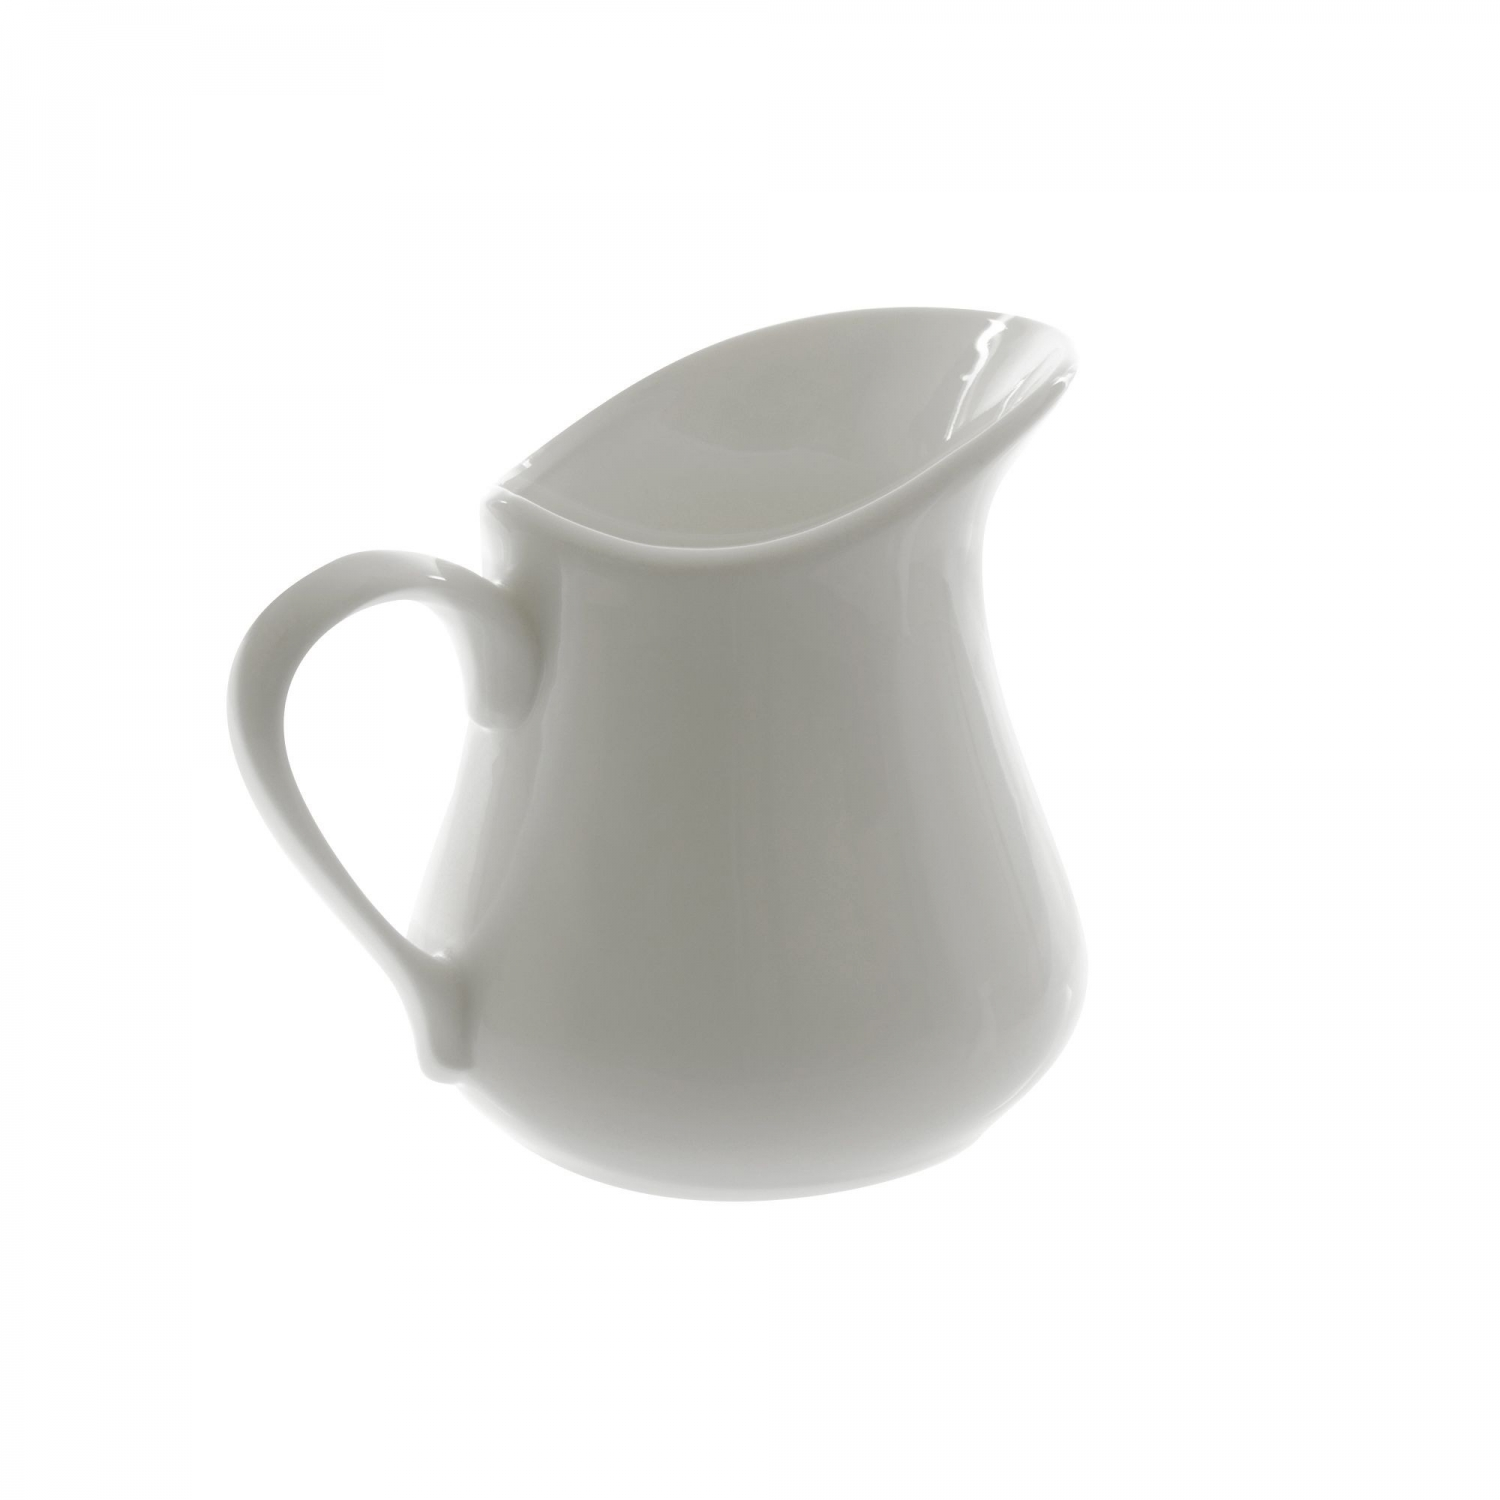 10 Strawberry Street WTR-45JUG Whittier Milk Jug / Creamer 12 oz.